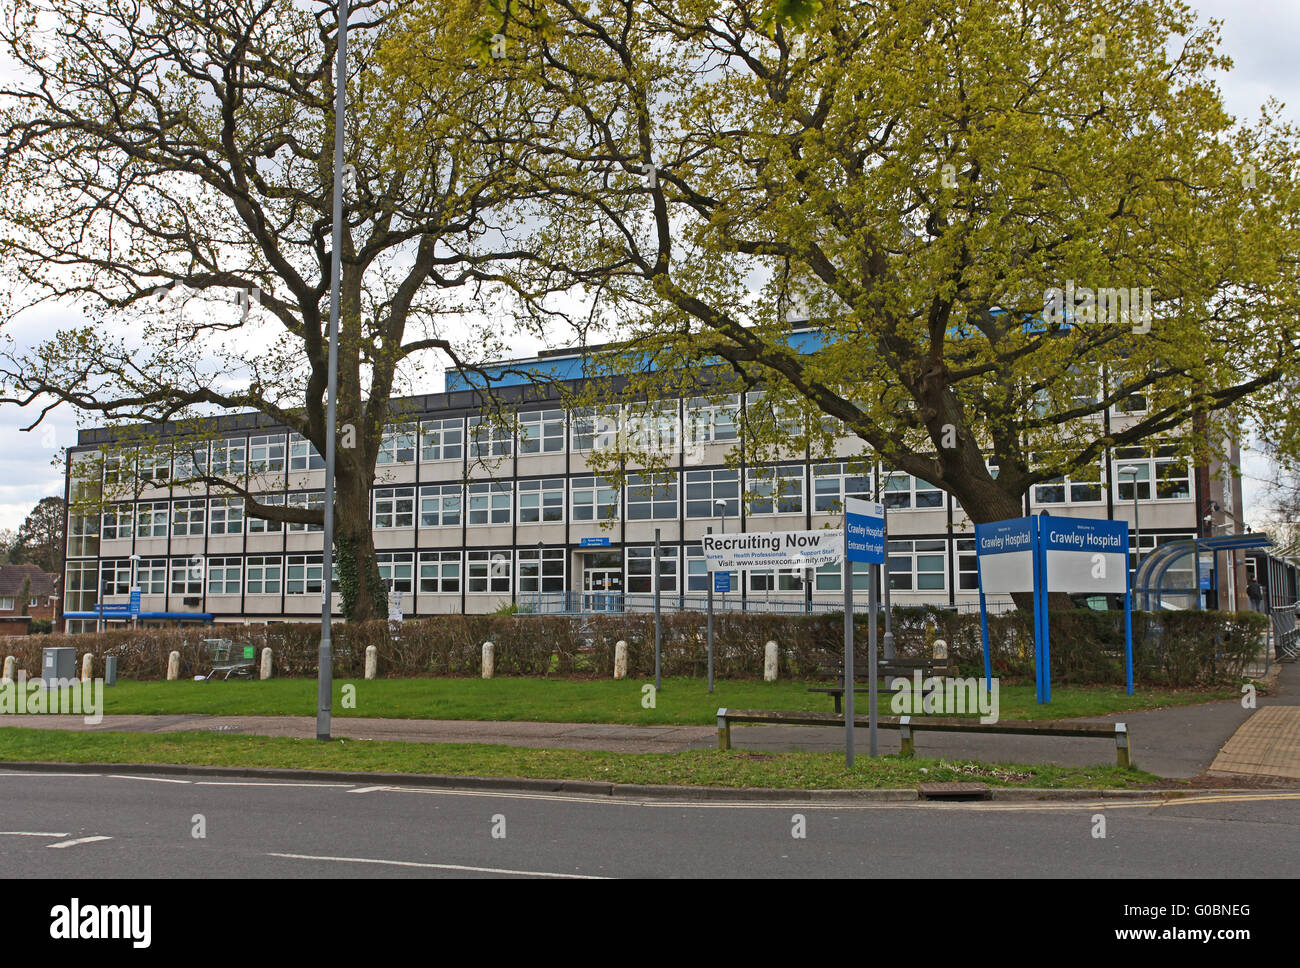 View of Crawley NHS Hospital - Stock Image